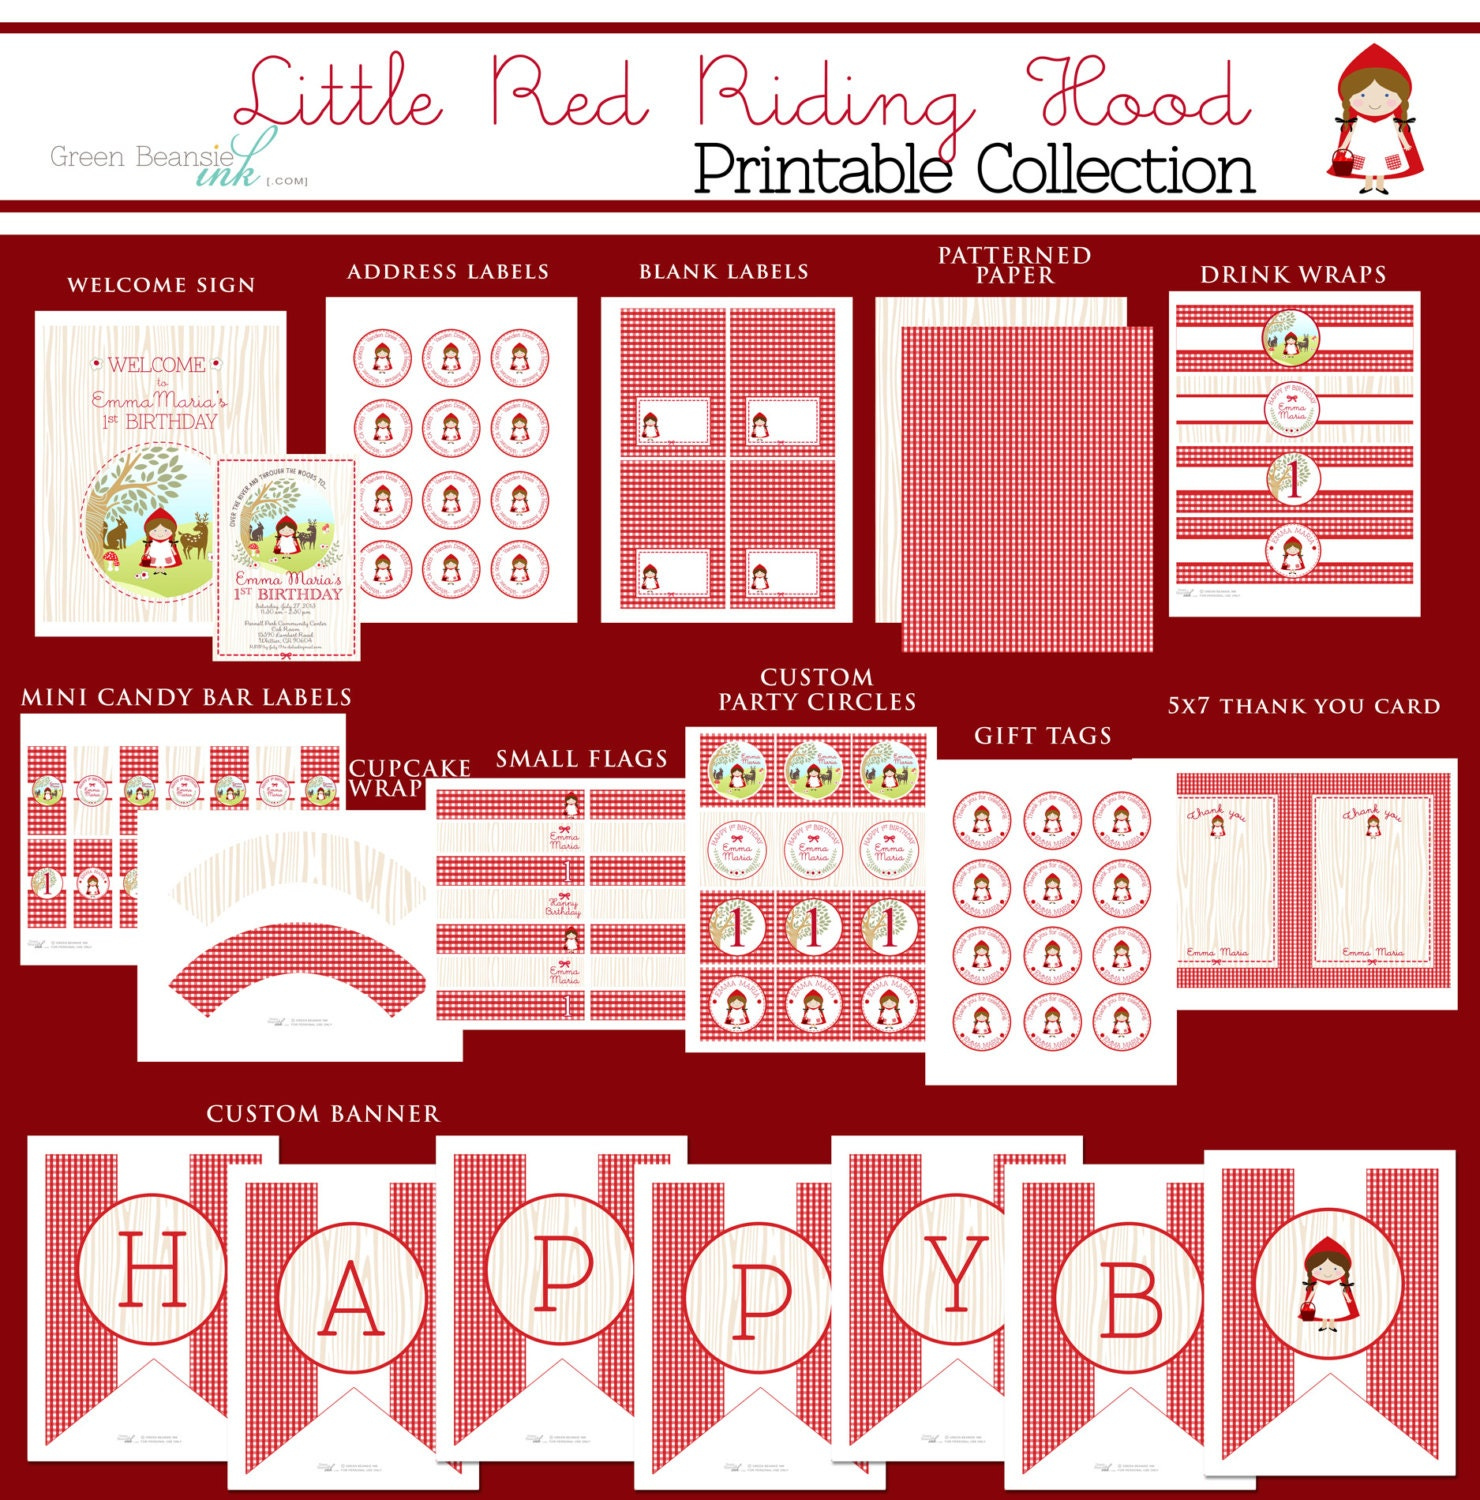 Little Red Riding Hood Birthday Printable Party Invitation and